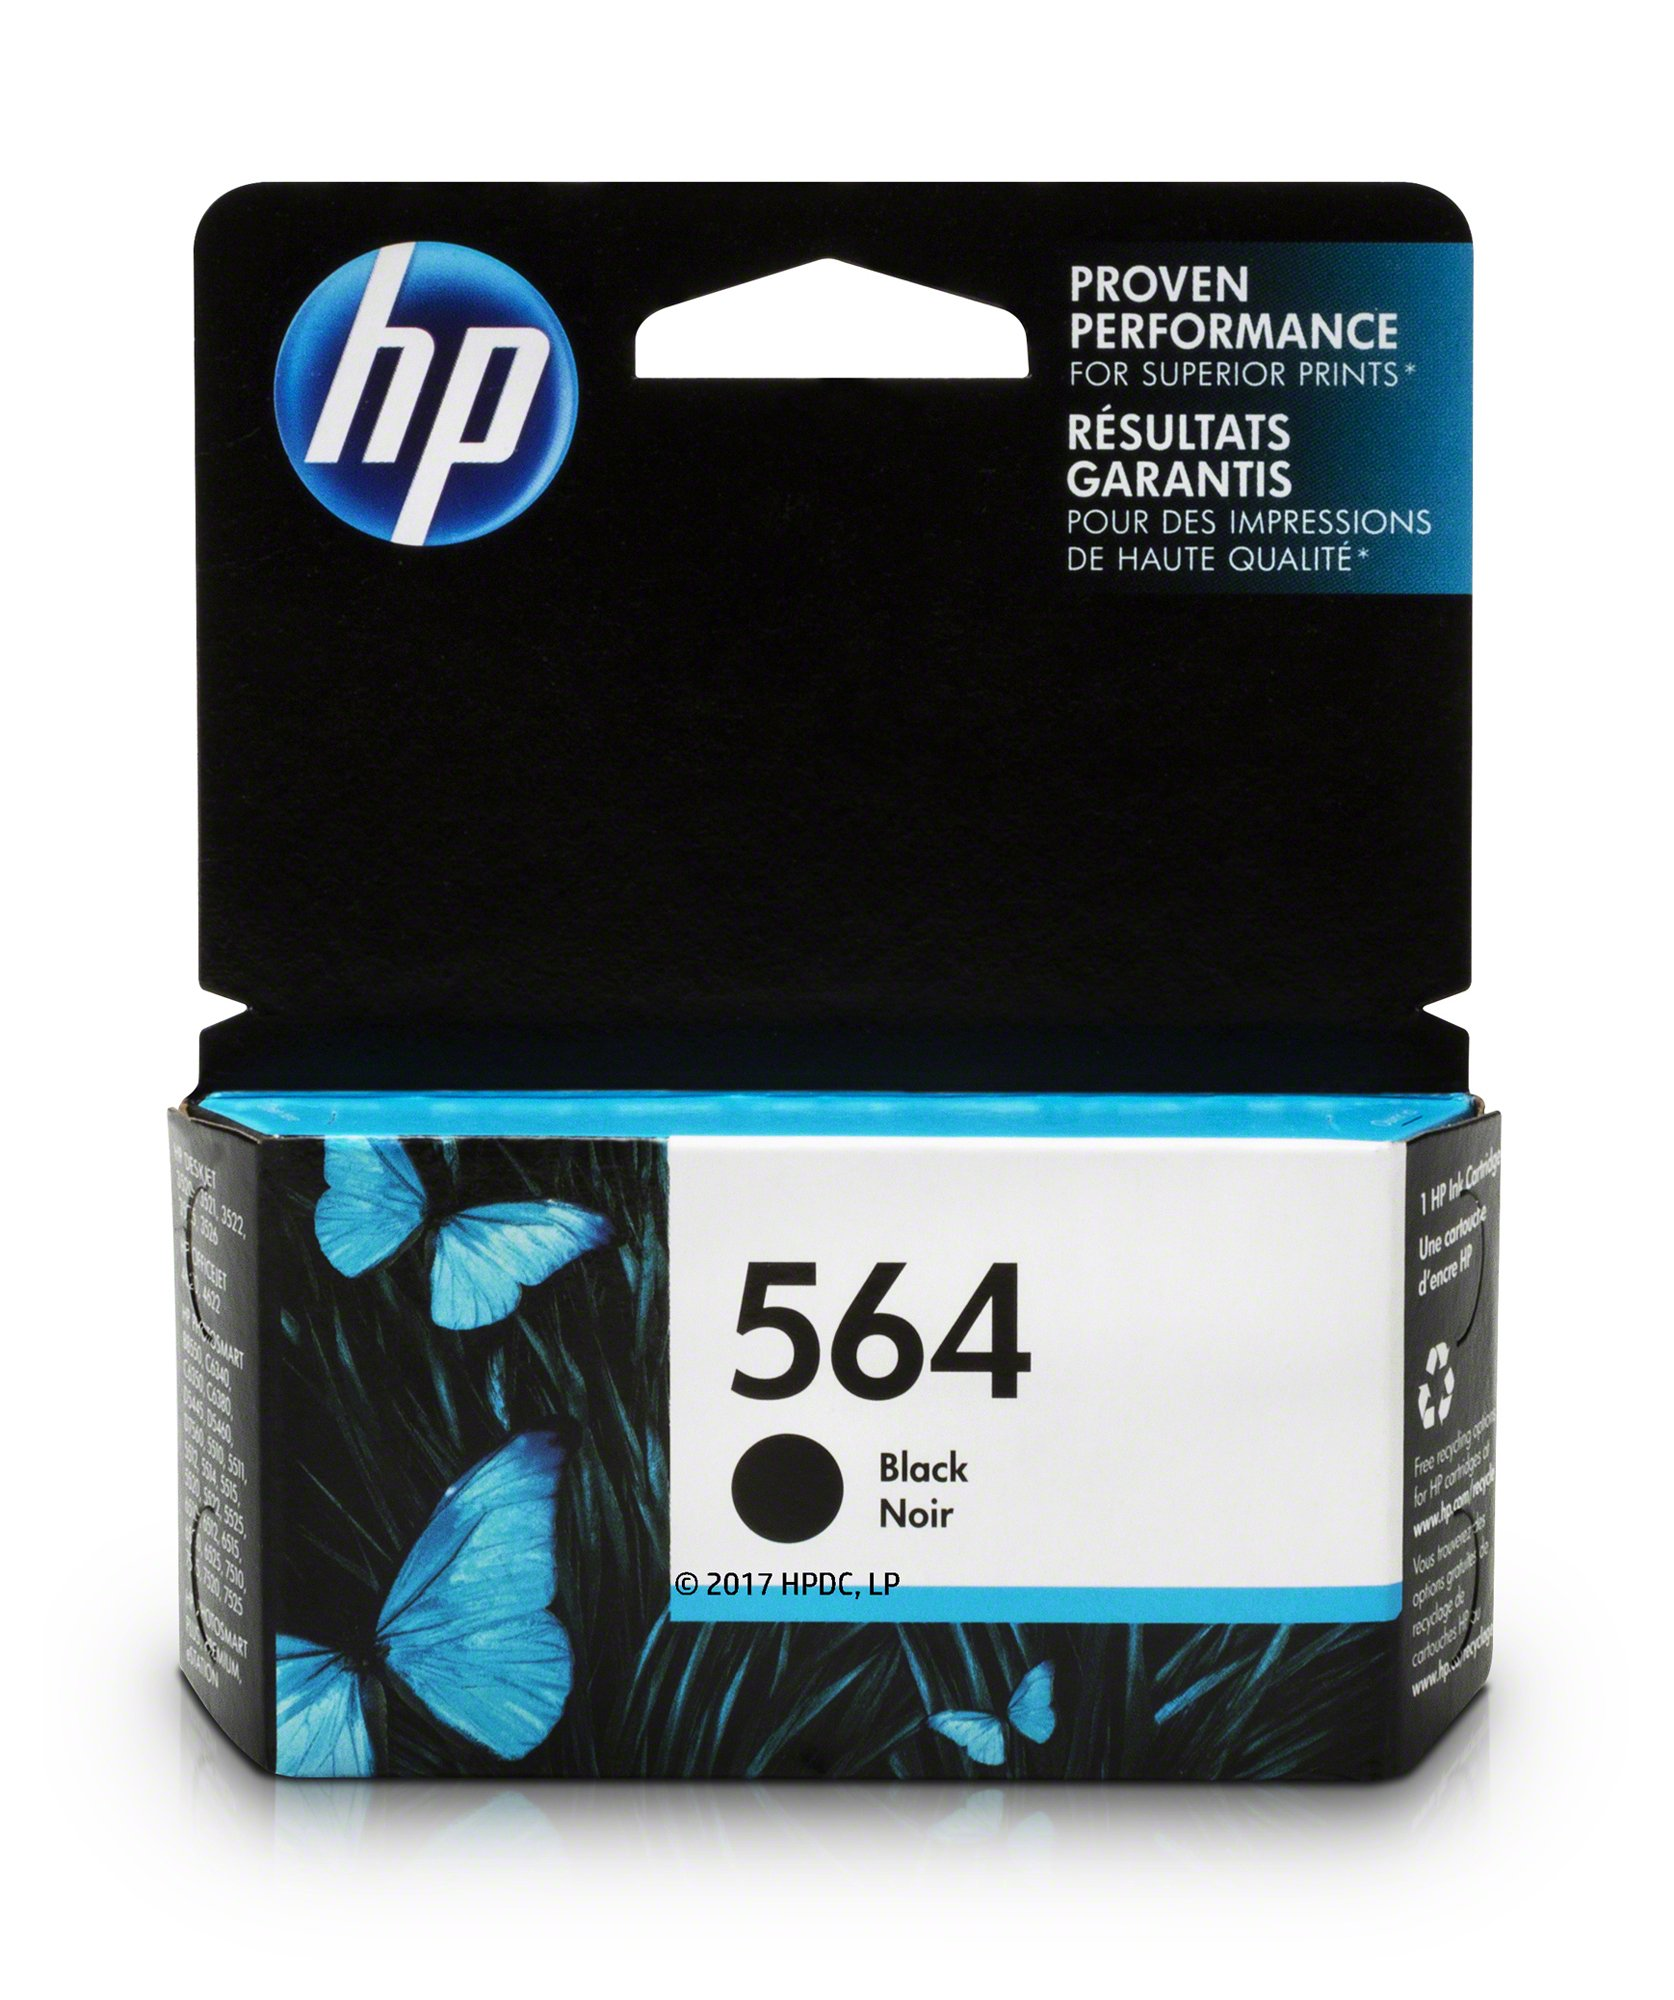 HP 564 Black Ink Cartridge (CB316WN) for HP Deskjet 3520 3521 3522 3526 HP Officejet 4610 4620 4622 HP Photosmart: 5510 5512 5514 5515 5520 5525 6510 6512 6515 6520 6525 7510 7515 7520 7525 B8550 C6340 C6350 D7560 C510 B209 B210 C309 C310 C410 C510